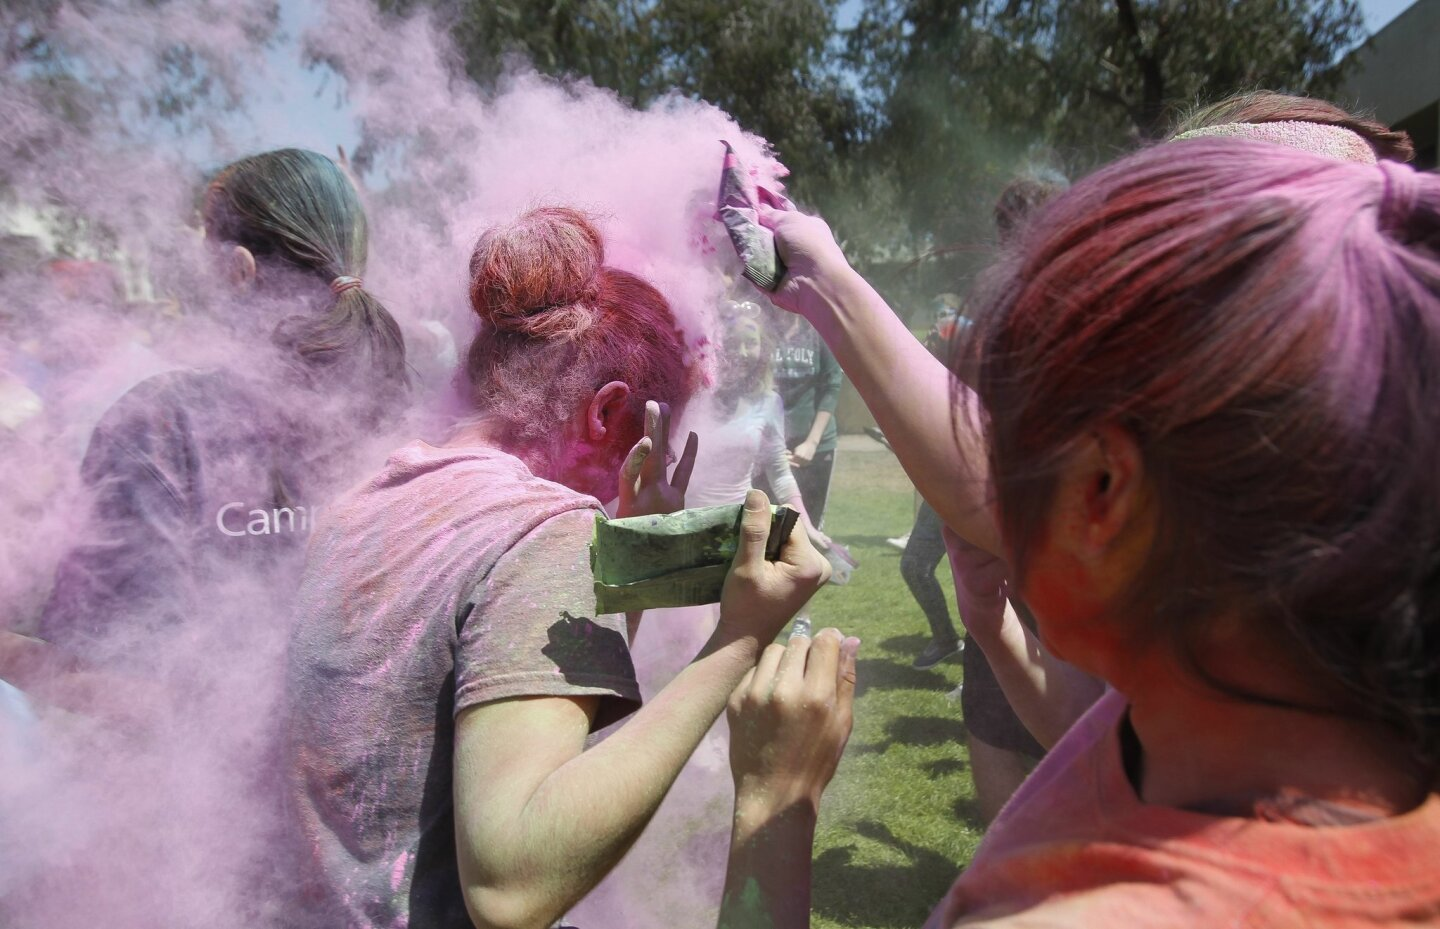 UCSD student Kathleen Bonilla gets covered with colored powder.